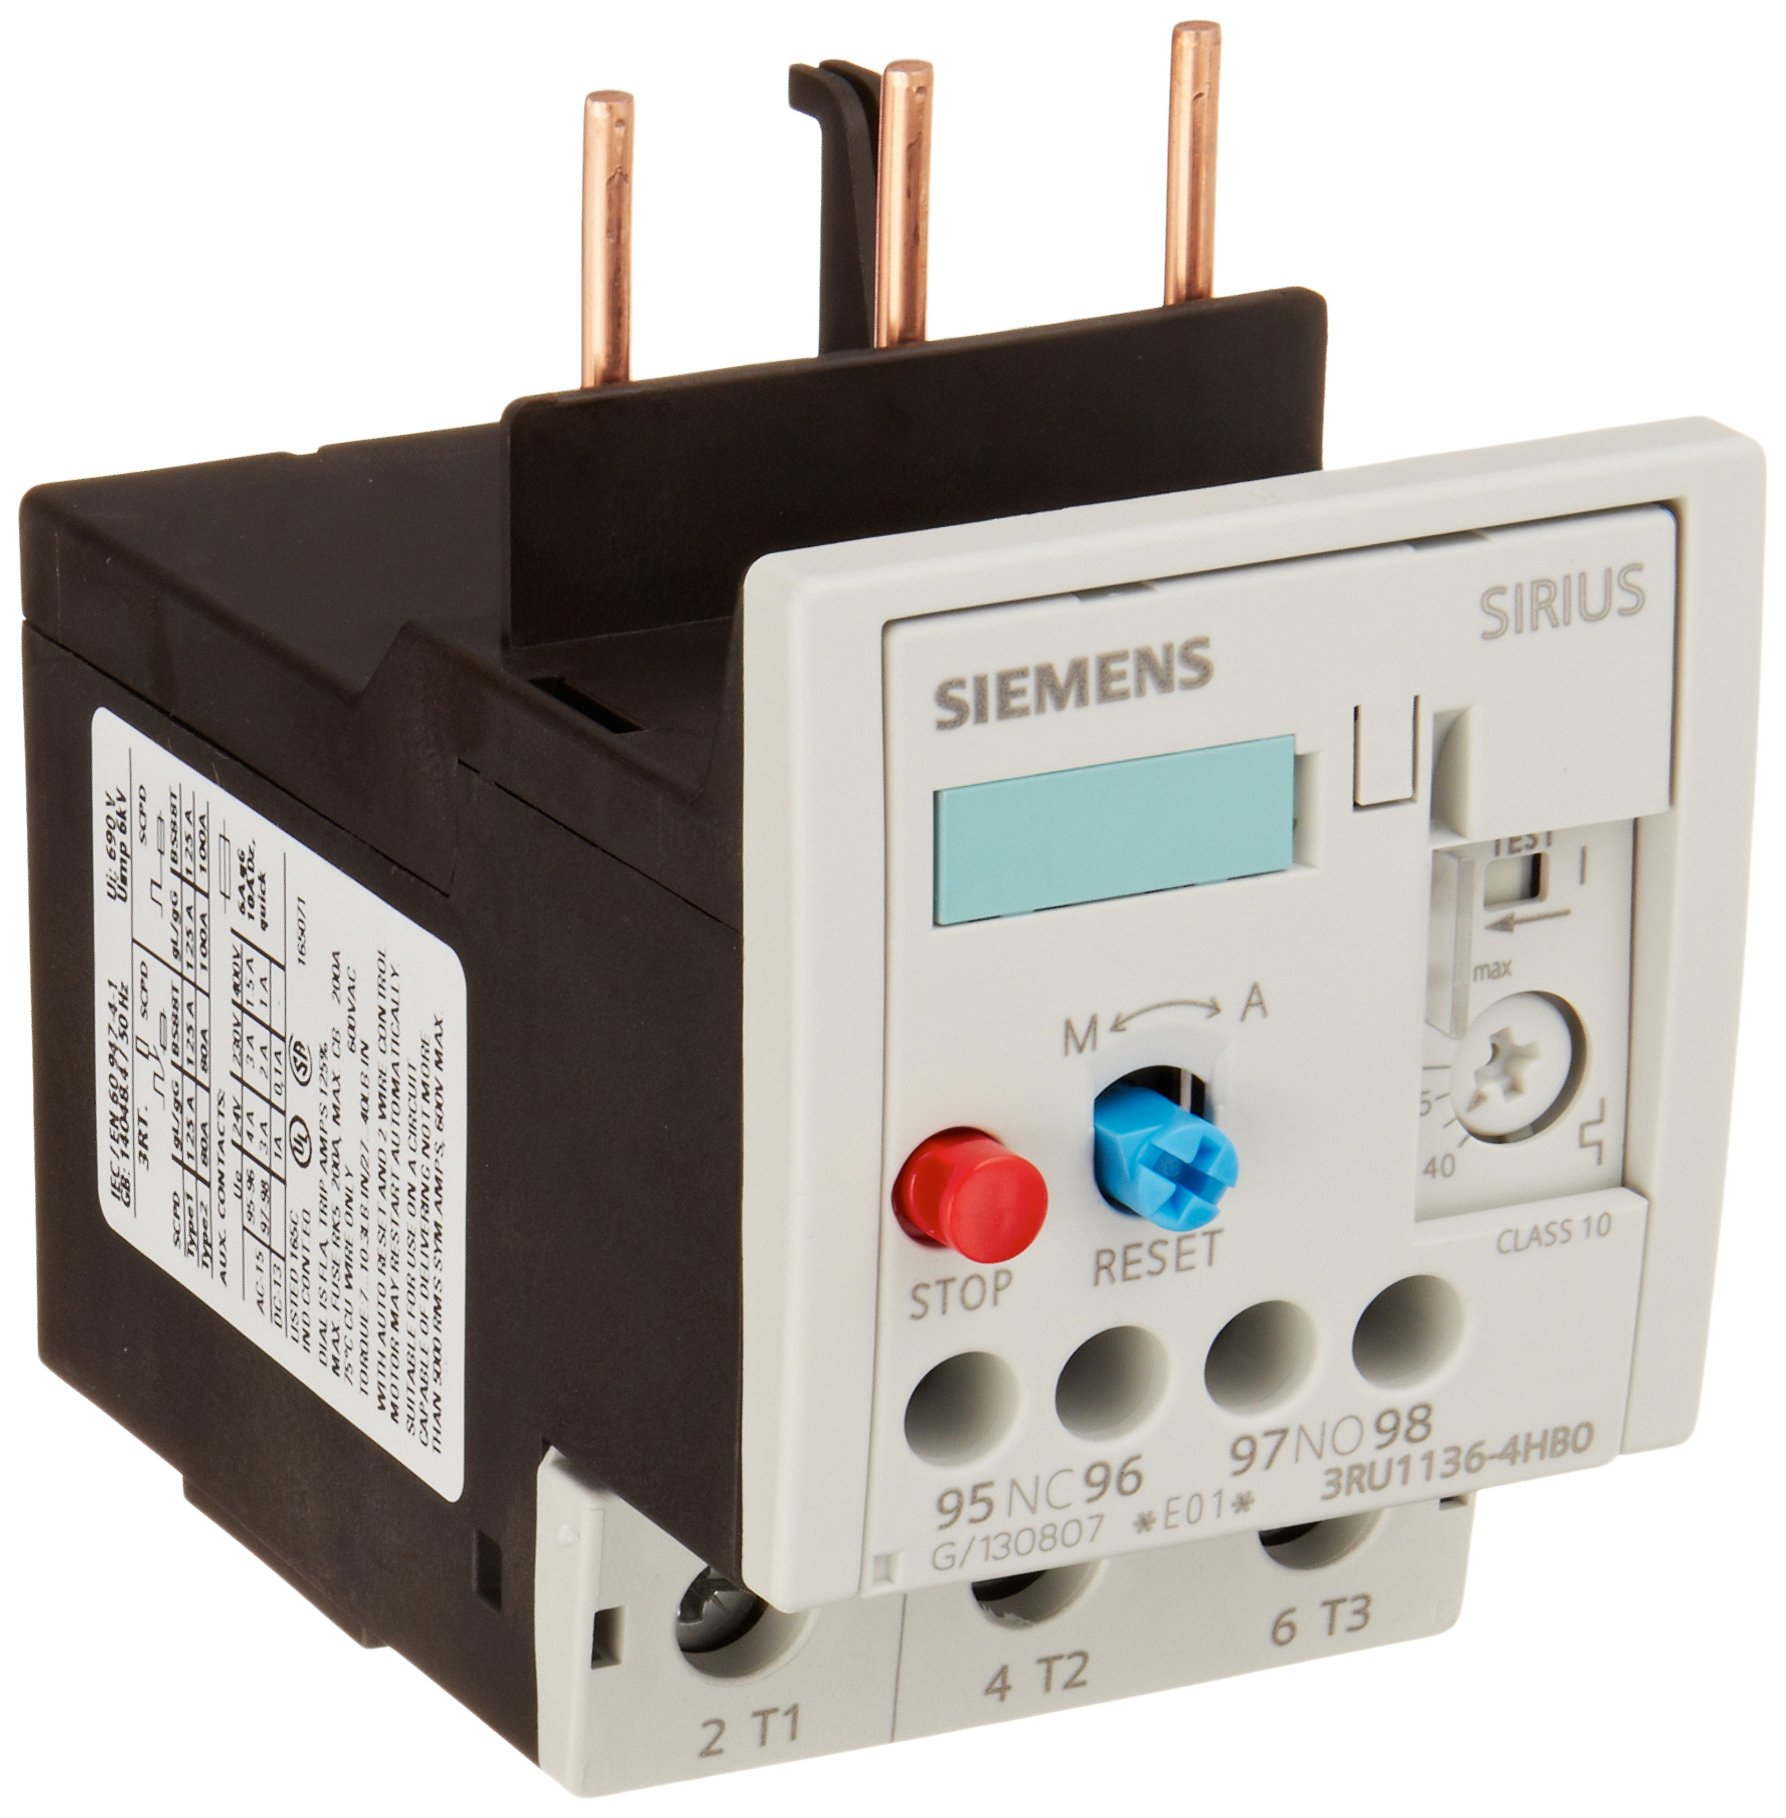 Siemens 3RU11 36-4HB0 Thermal Overload Relay, For Mounting Onto Contactor, Size S2, 40-50A Setting Range